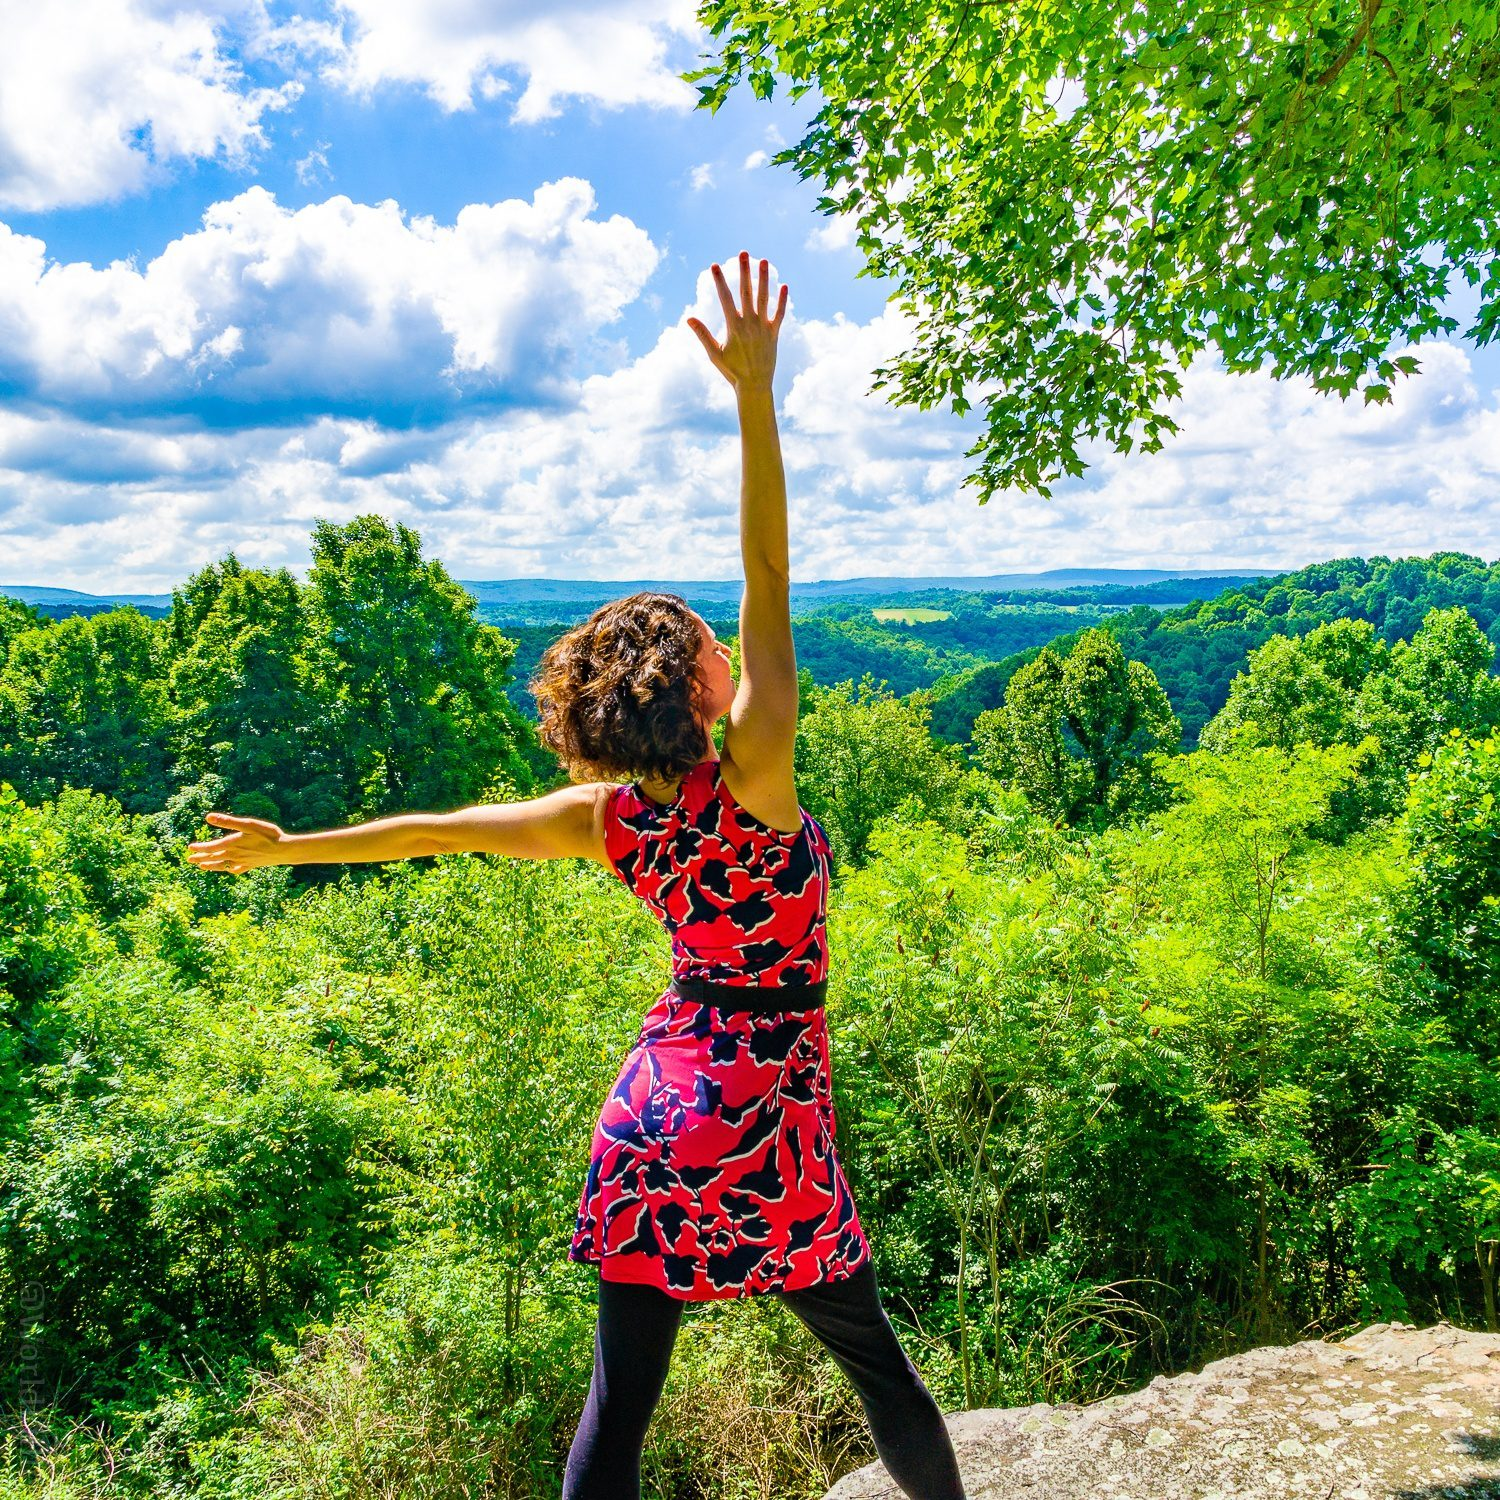 Fun places to go: The Laurel Highlands near Pittsburgh, PA